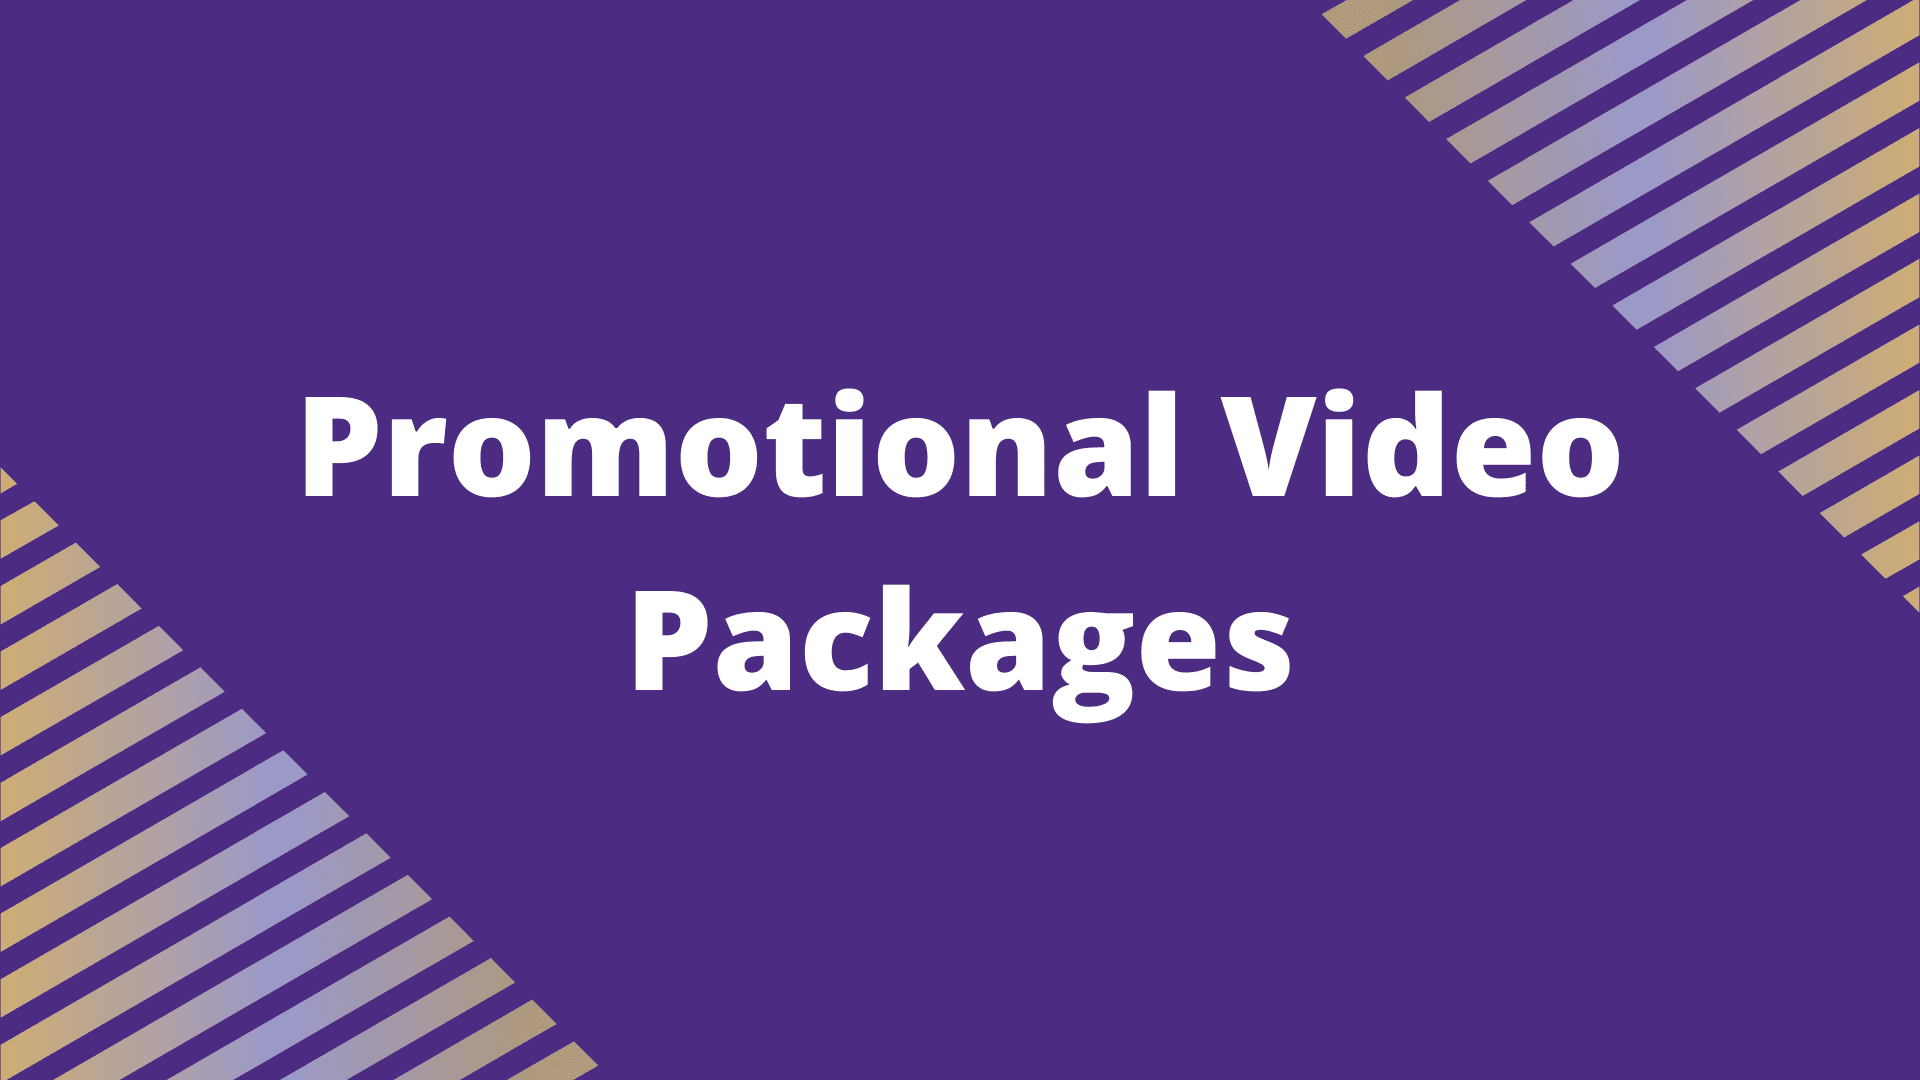 Promotional Video Packages, Business, Business Assistance, Entrepreneur, Event, Events,  Online Programs, Online support, Podcast, PowerPoint, PowerPoint Presentation, PowerPoint Slides, Presentation, Presentations, Program, Programs, Promotional Videos, Resources, Rose Davidson, Small Business, Small Business Owner, Social Media, Speaker, Speakers, Support, Video, Video Editing, Vodcast, Workshop, Workshops